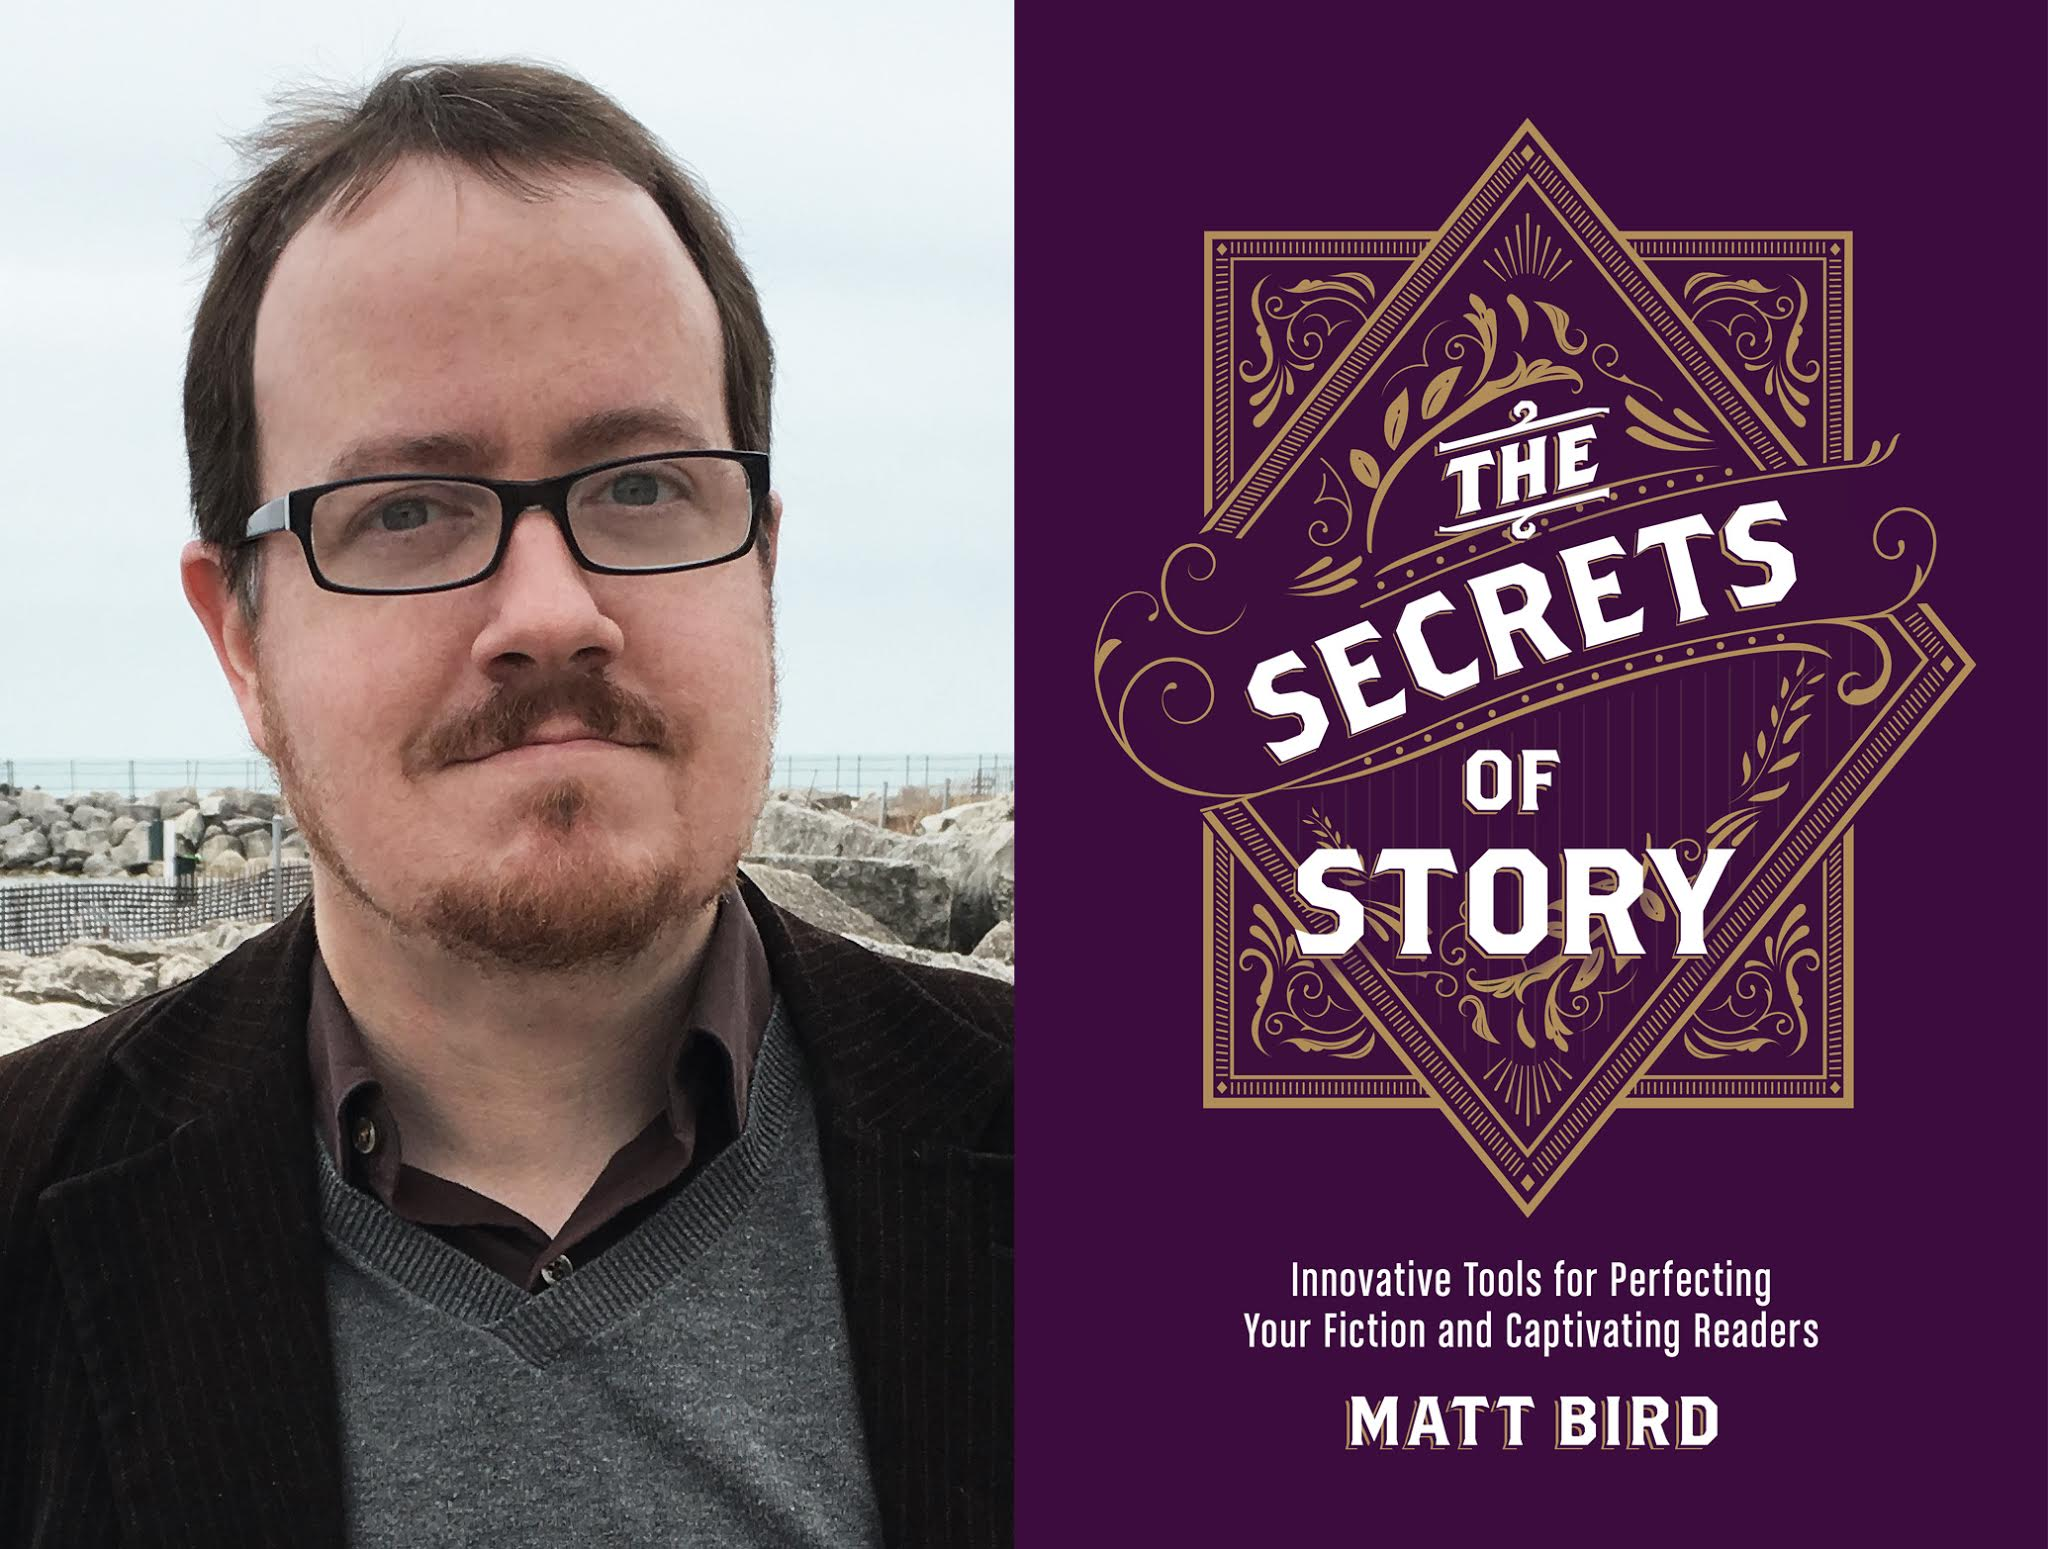 Secrets of story book by Matthew Bird.jpg